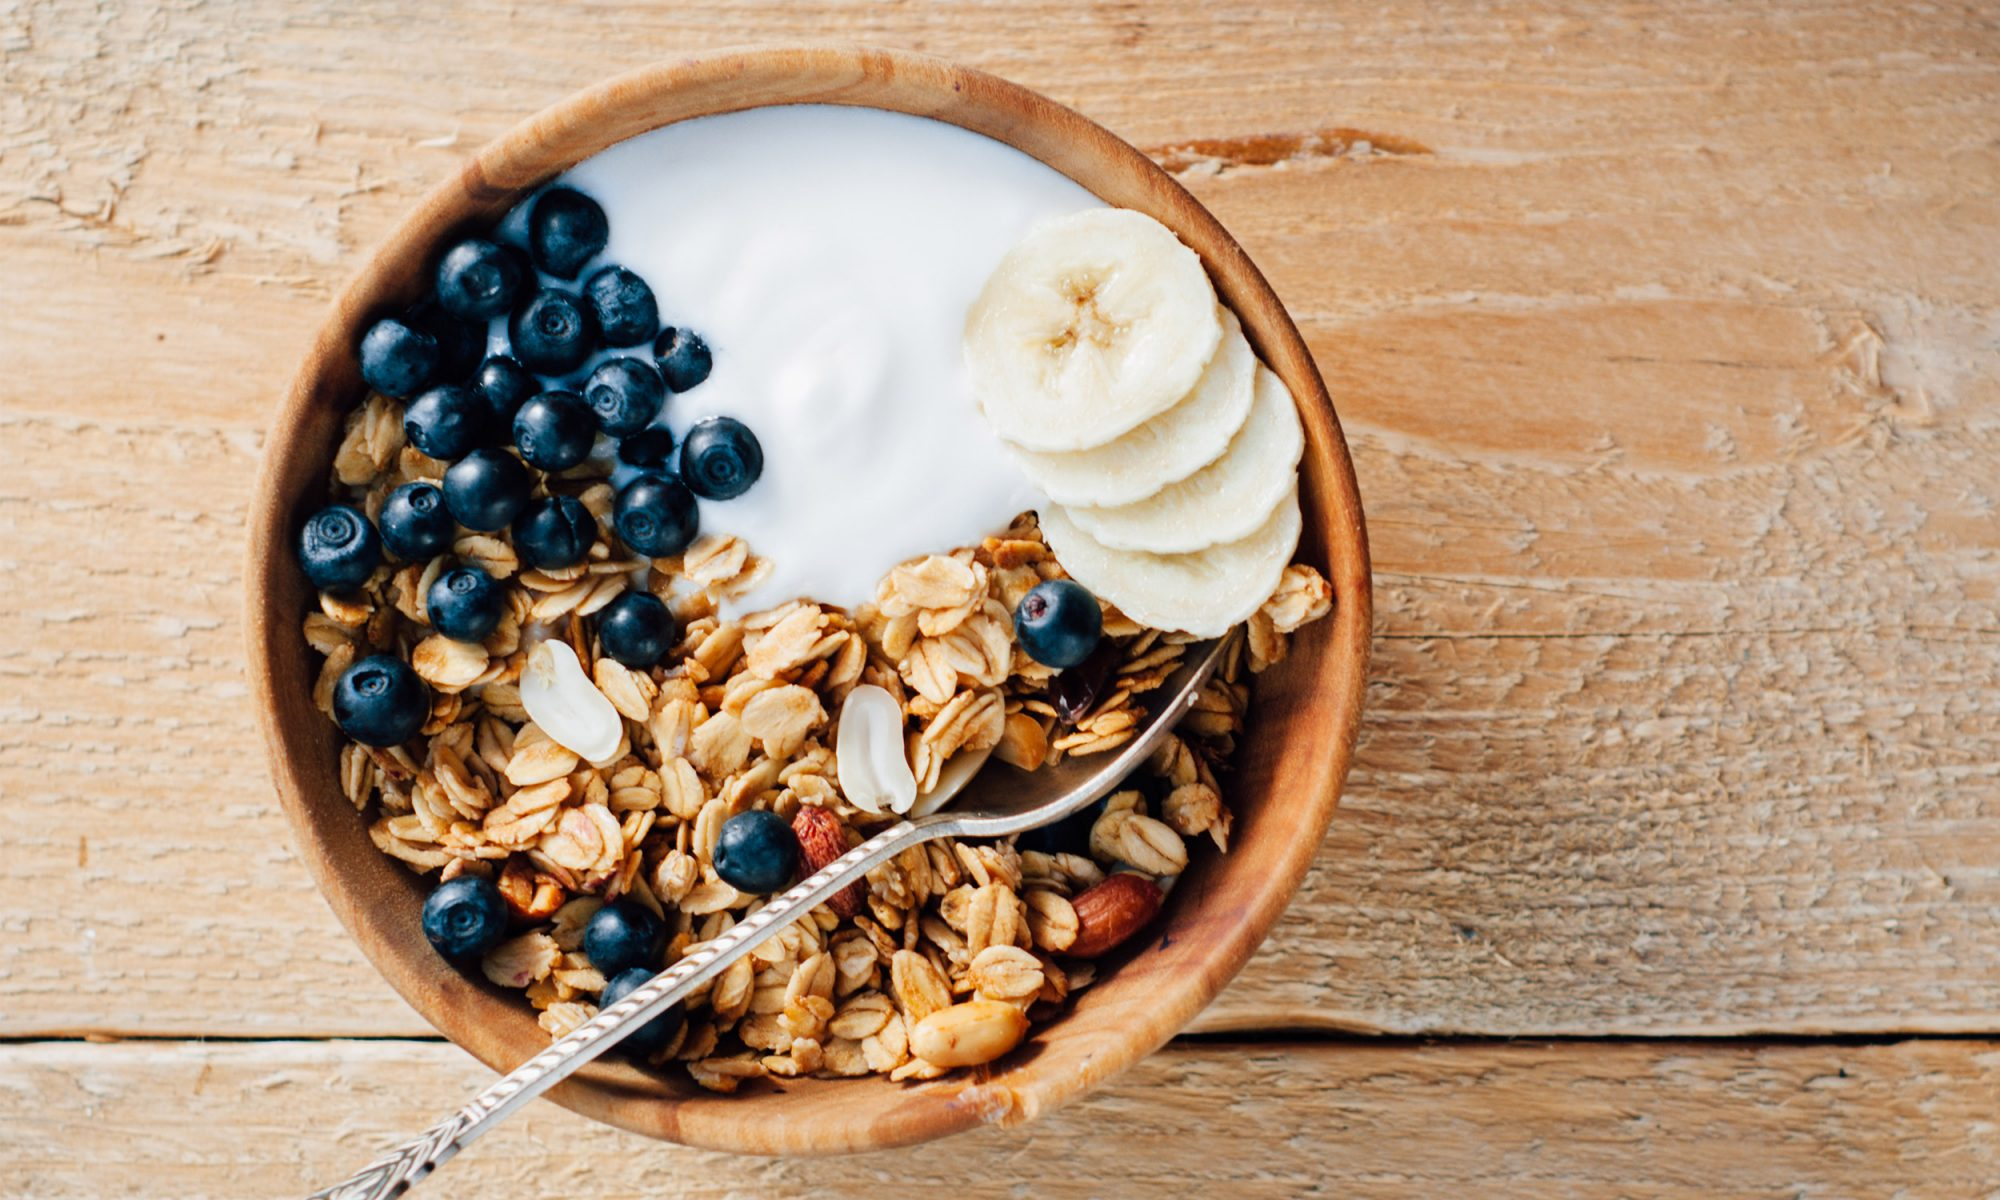 EC: 10 Healthy Breakfasts You Can Make for Under $1